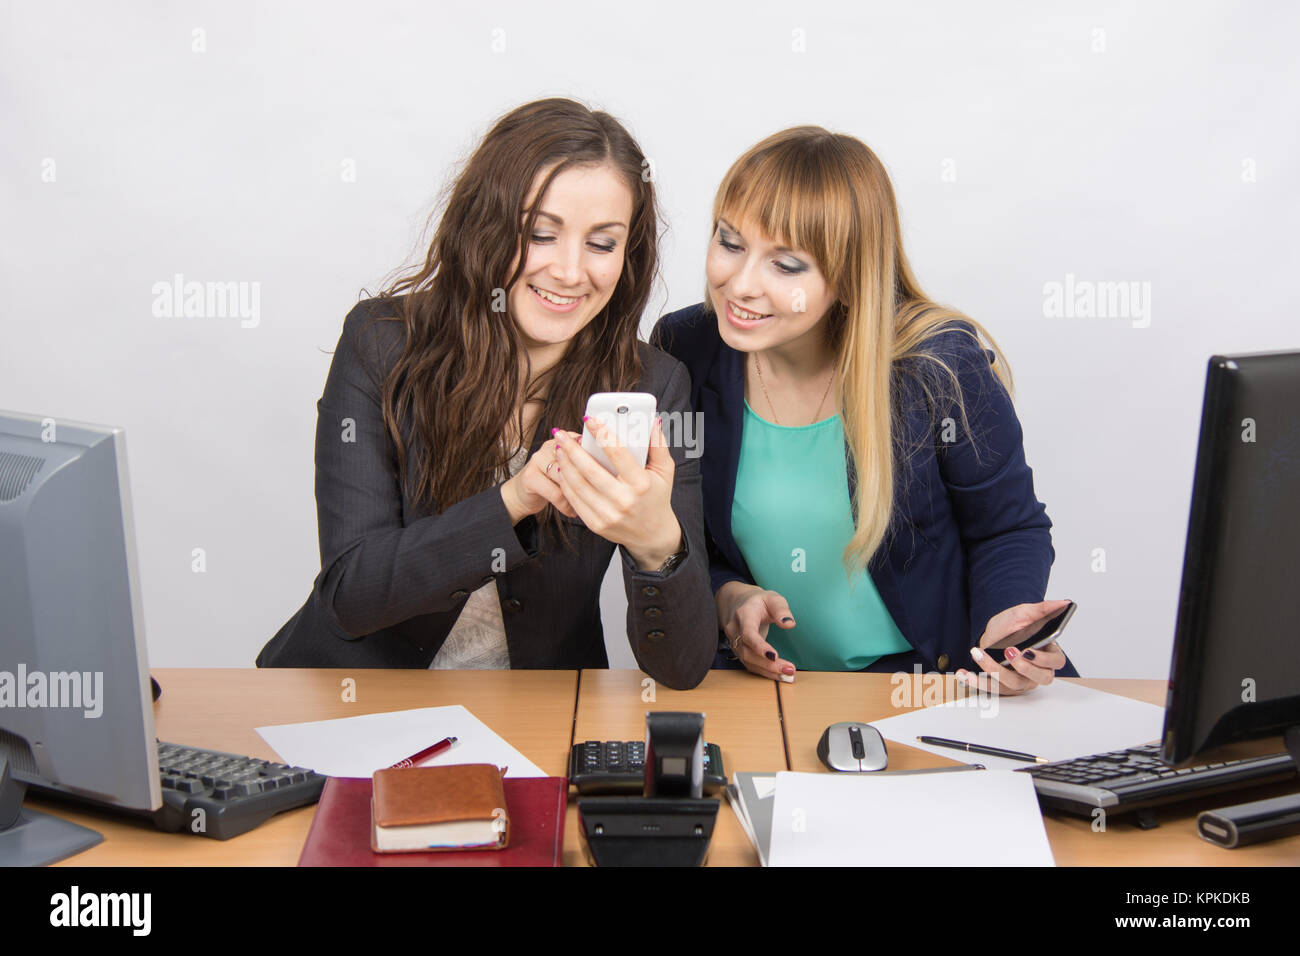 Two branchless workers enthusiastically looking at cell phone at his desk - Stock Image